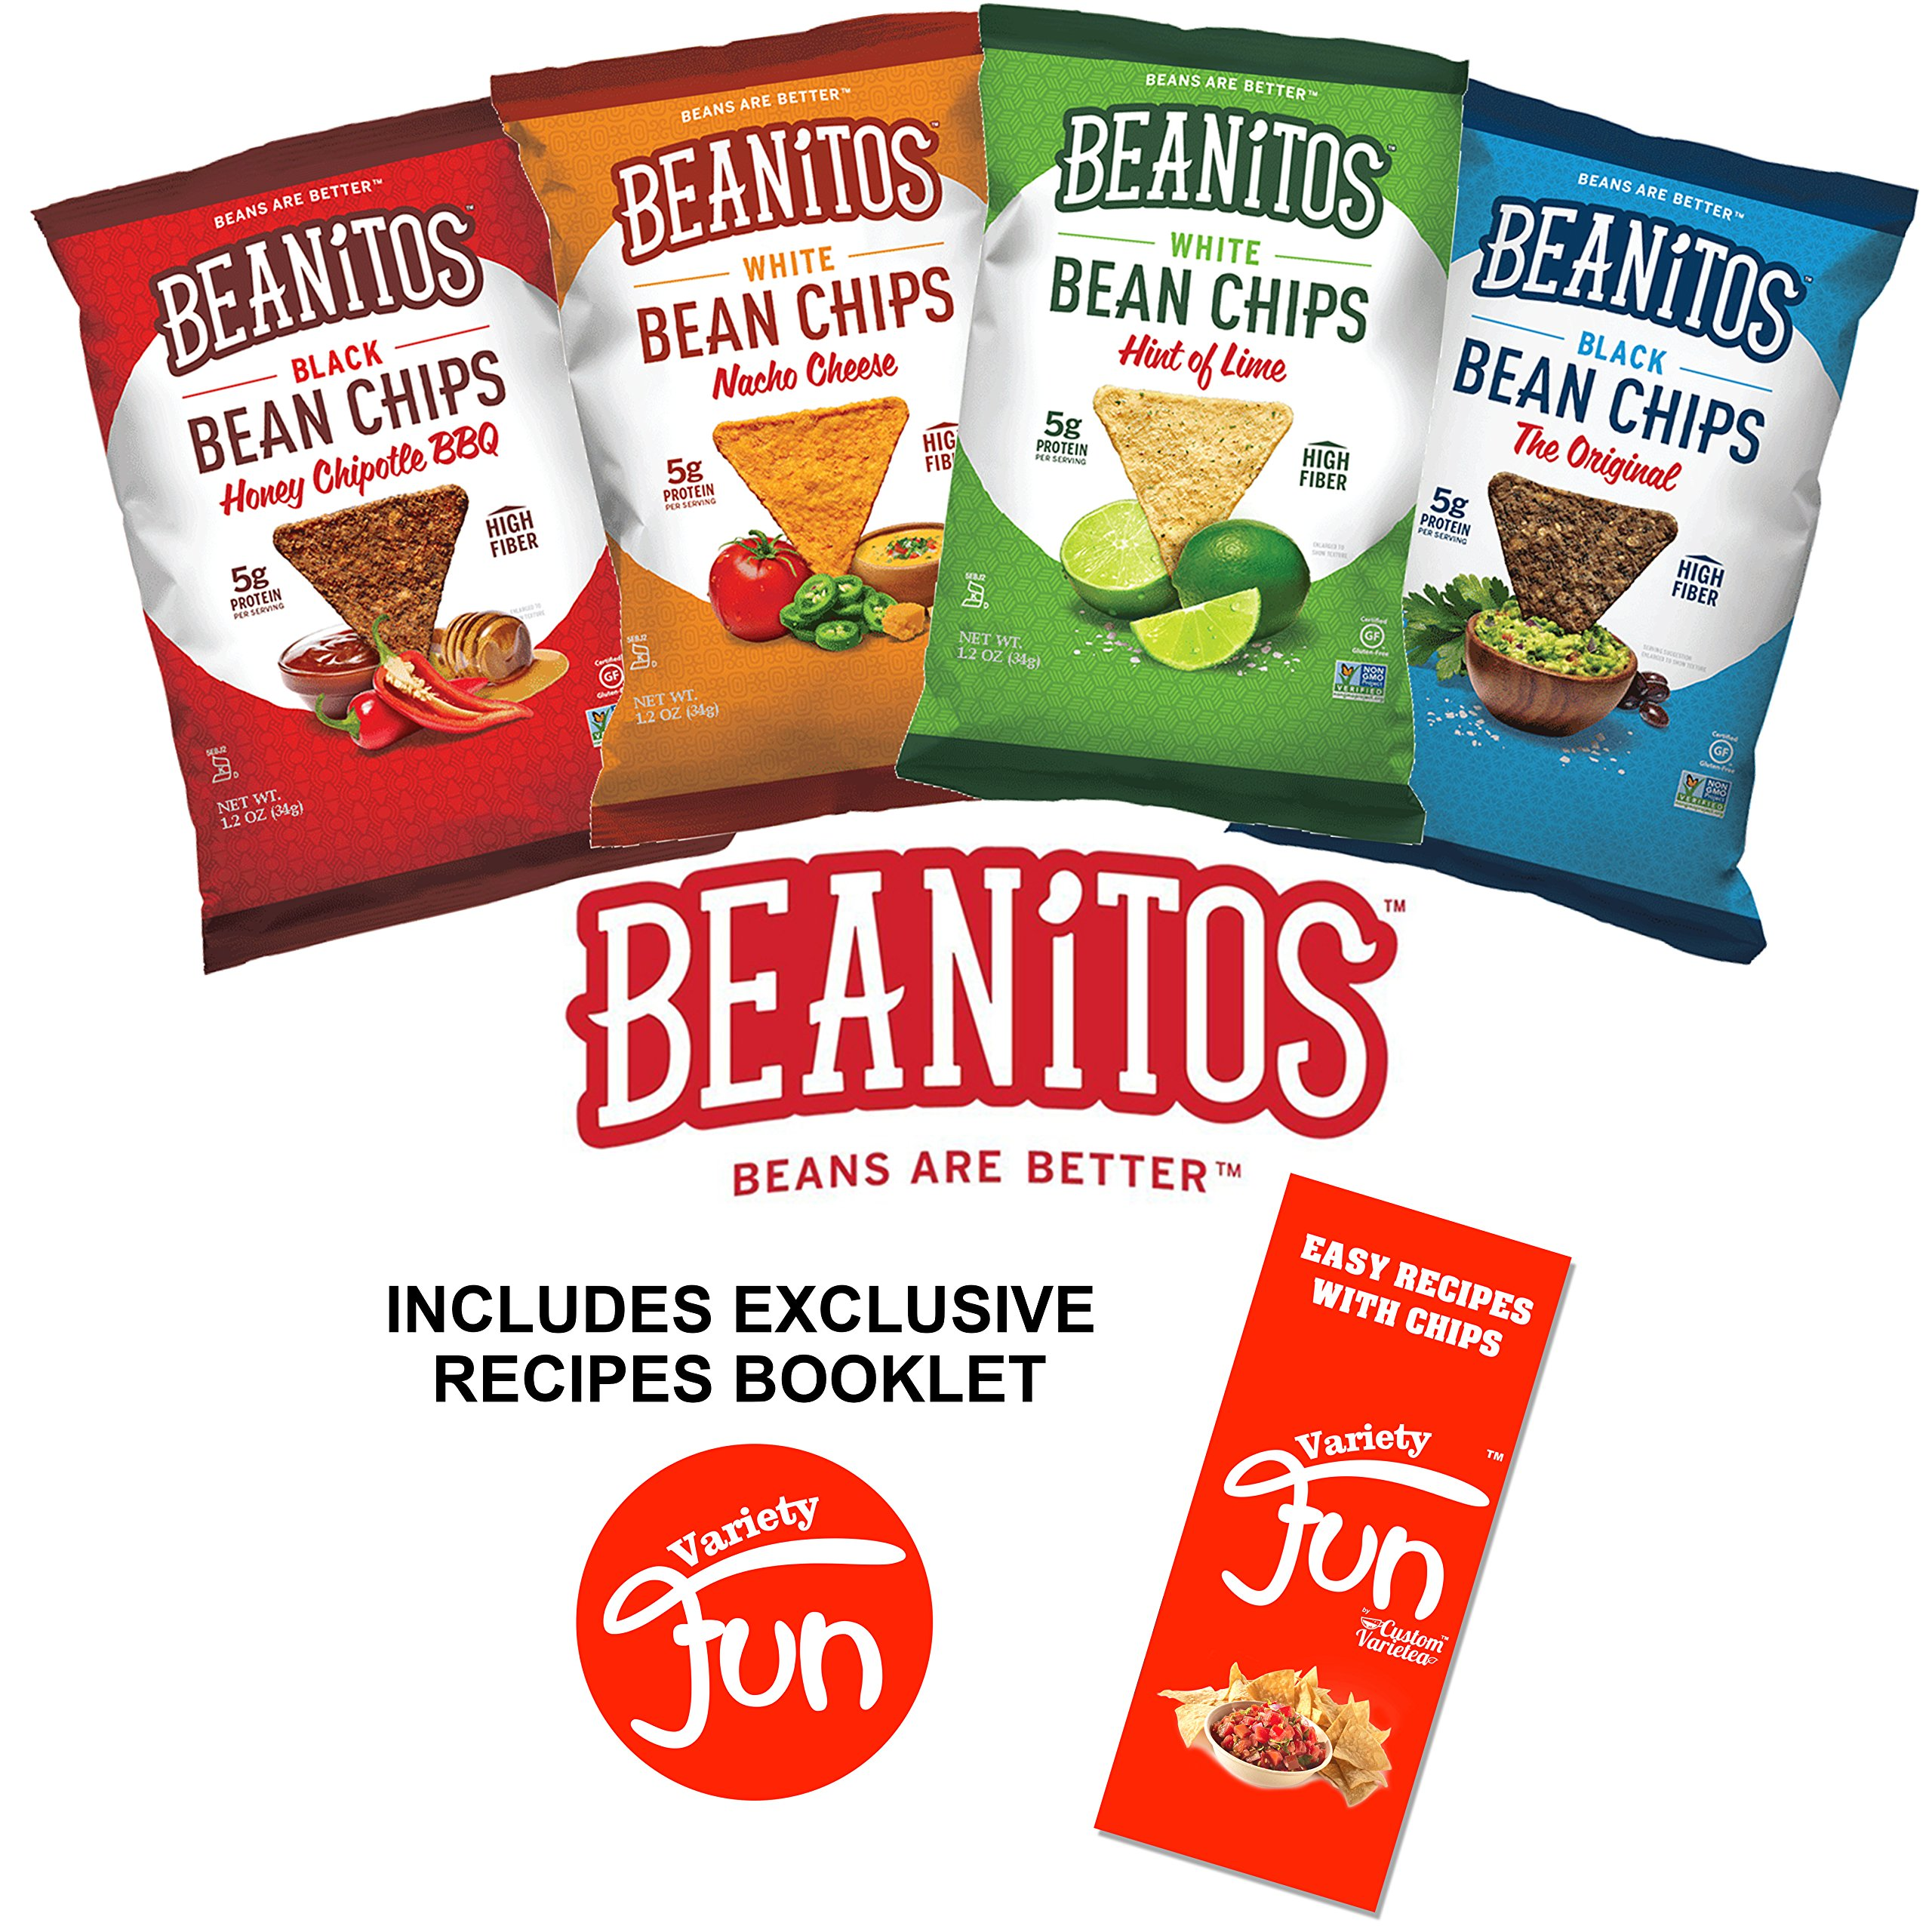 Beanitos Chips Variety Pack 8 Bags 4 Flavors (2 Original Black Bean, 2 Chipotle BBQ, 2 Nacho Cheese, 2 Hint of Lime) All Natural Gluten Free Vegan Certified Kosher (8 Count), (1.2 oz Each)